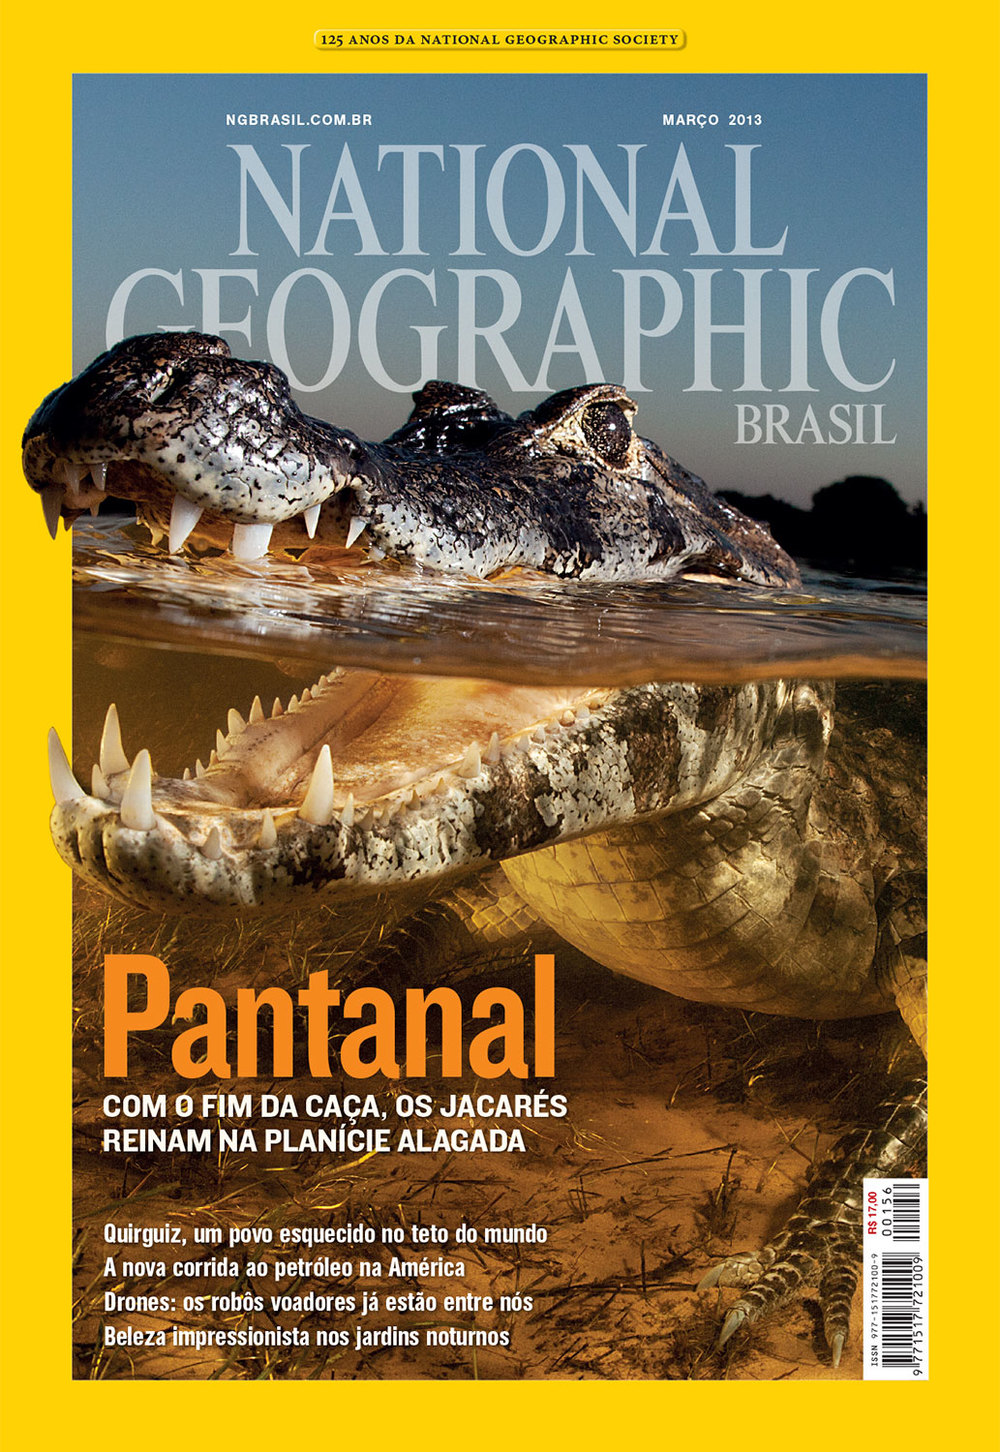 Photo editing and cover design | NG Brazil, March 2013. Photo: Luciano Candisani